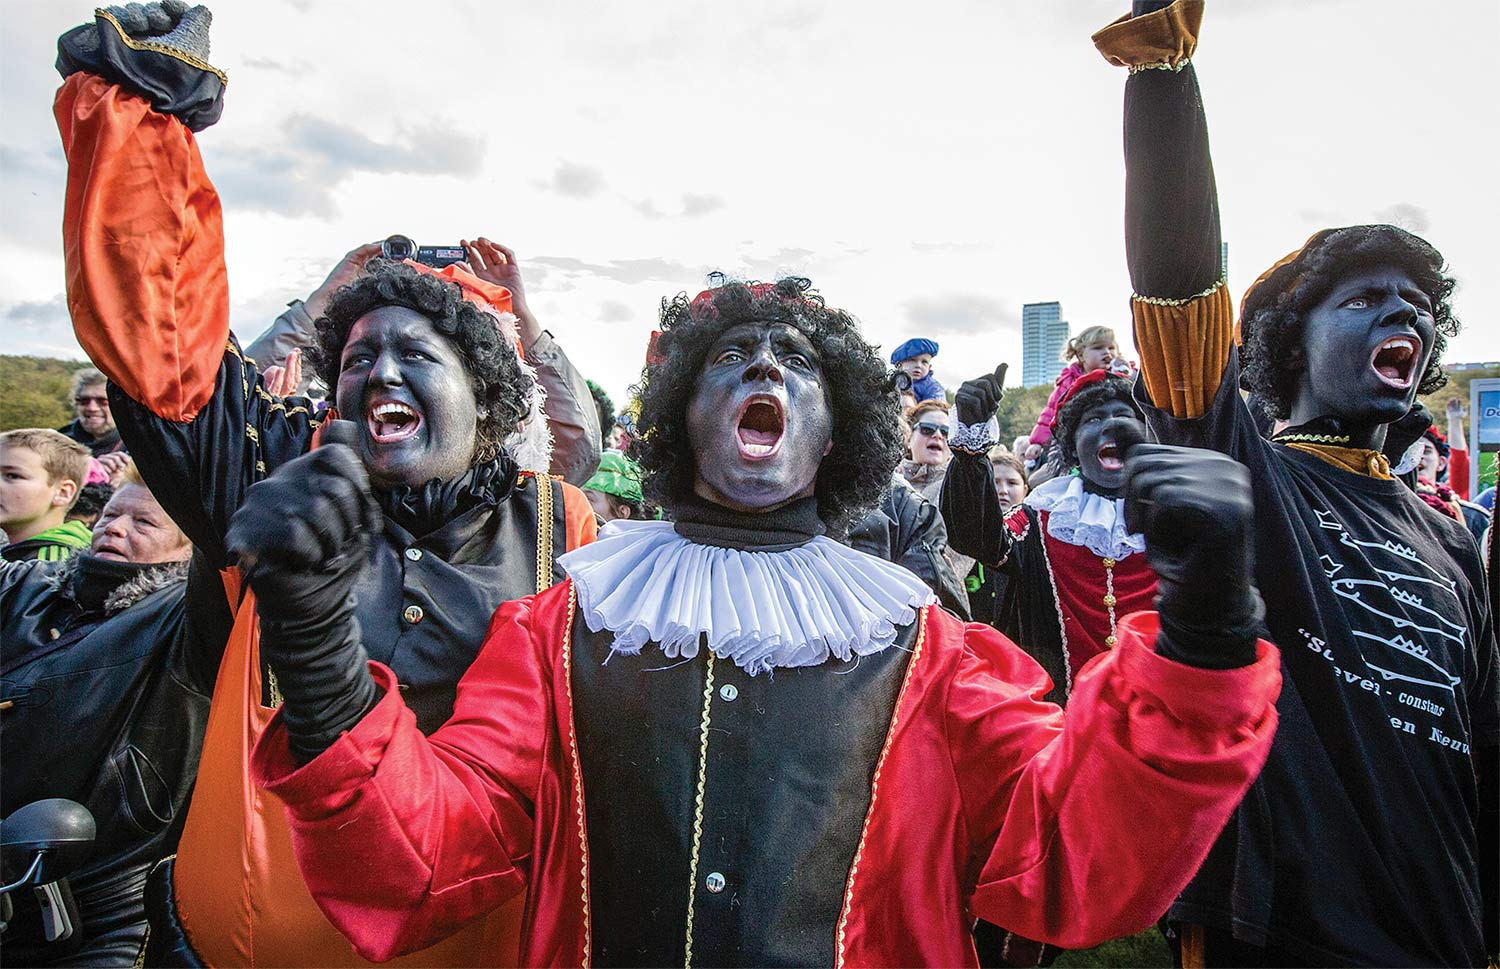 Bekend Populair Sinterklaas Dutch Tradition #LM81 – Aboriginaltourismontario &UP59